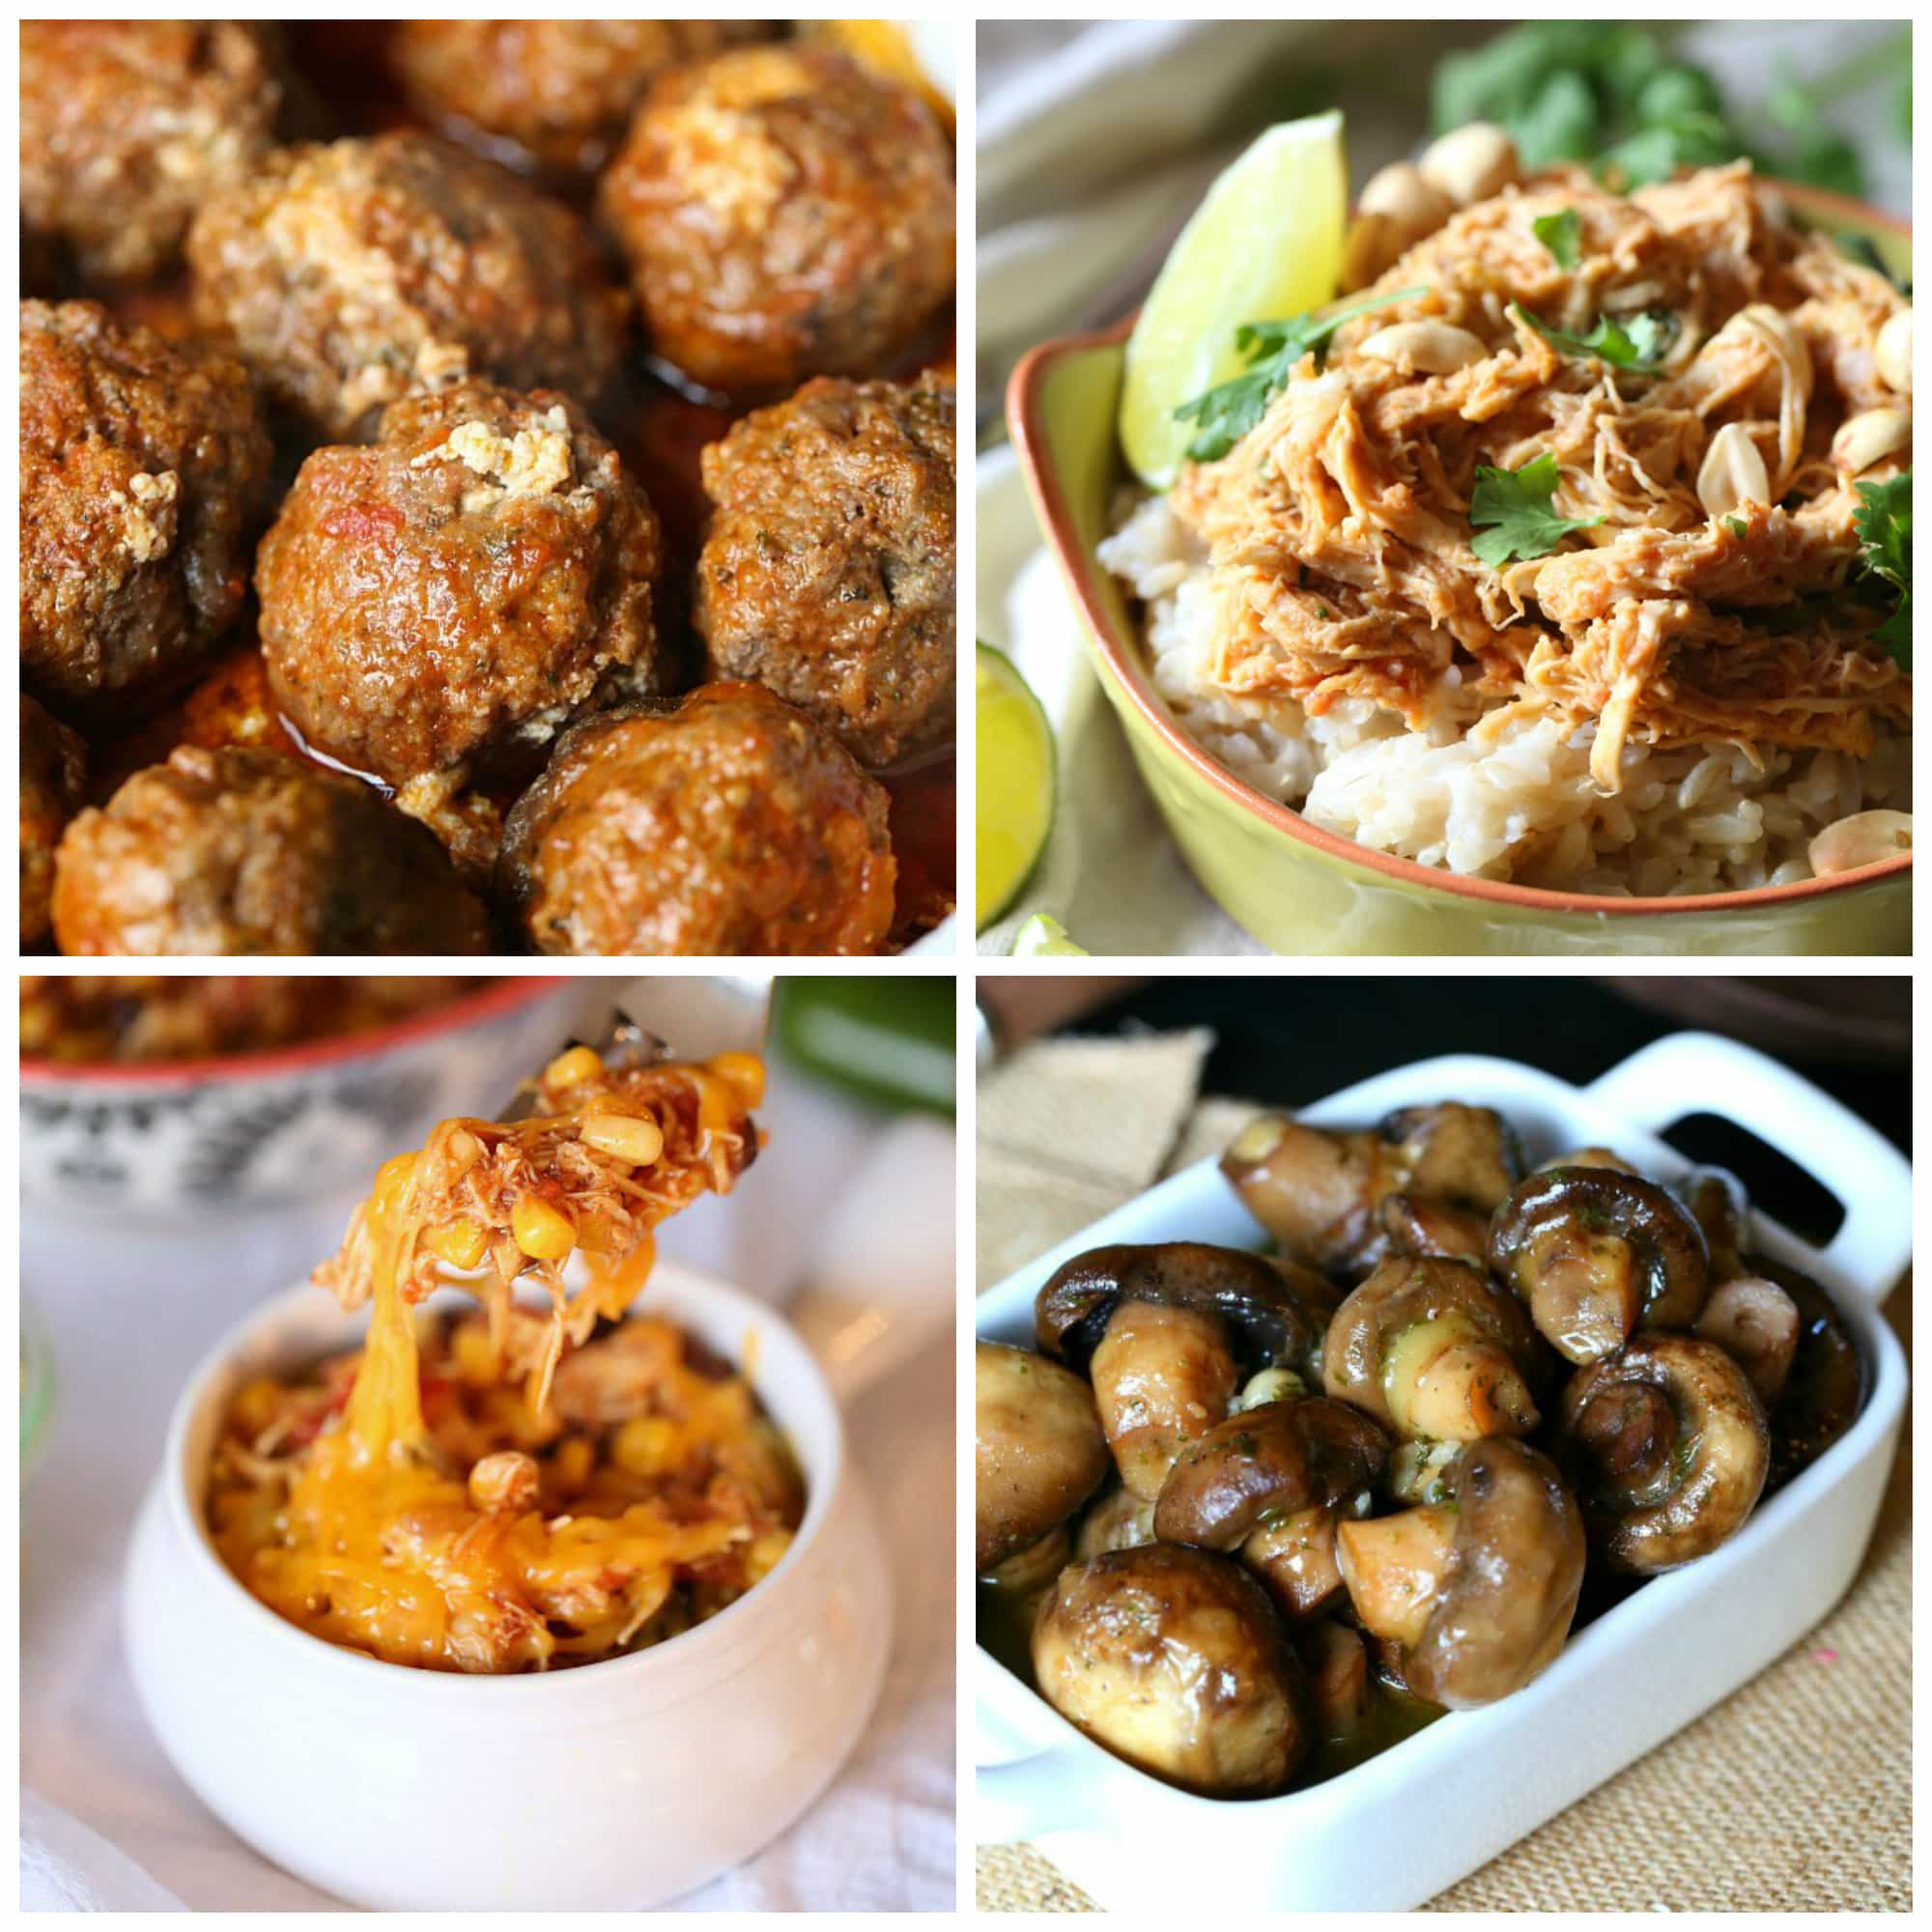 Easy Slow Cooker Meatballs and more slow cooker recipes